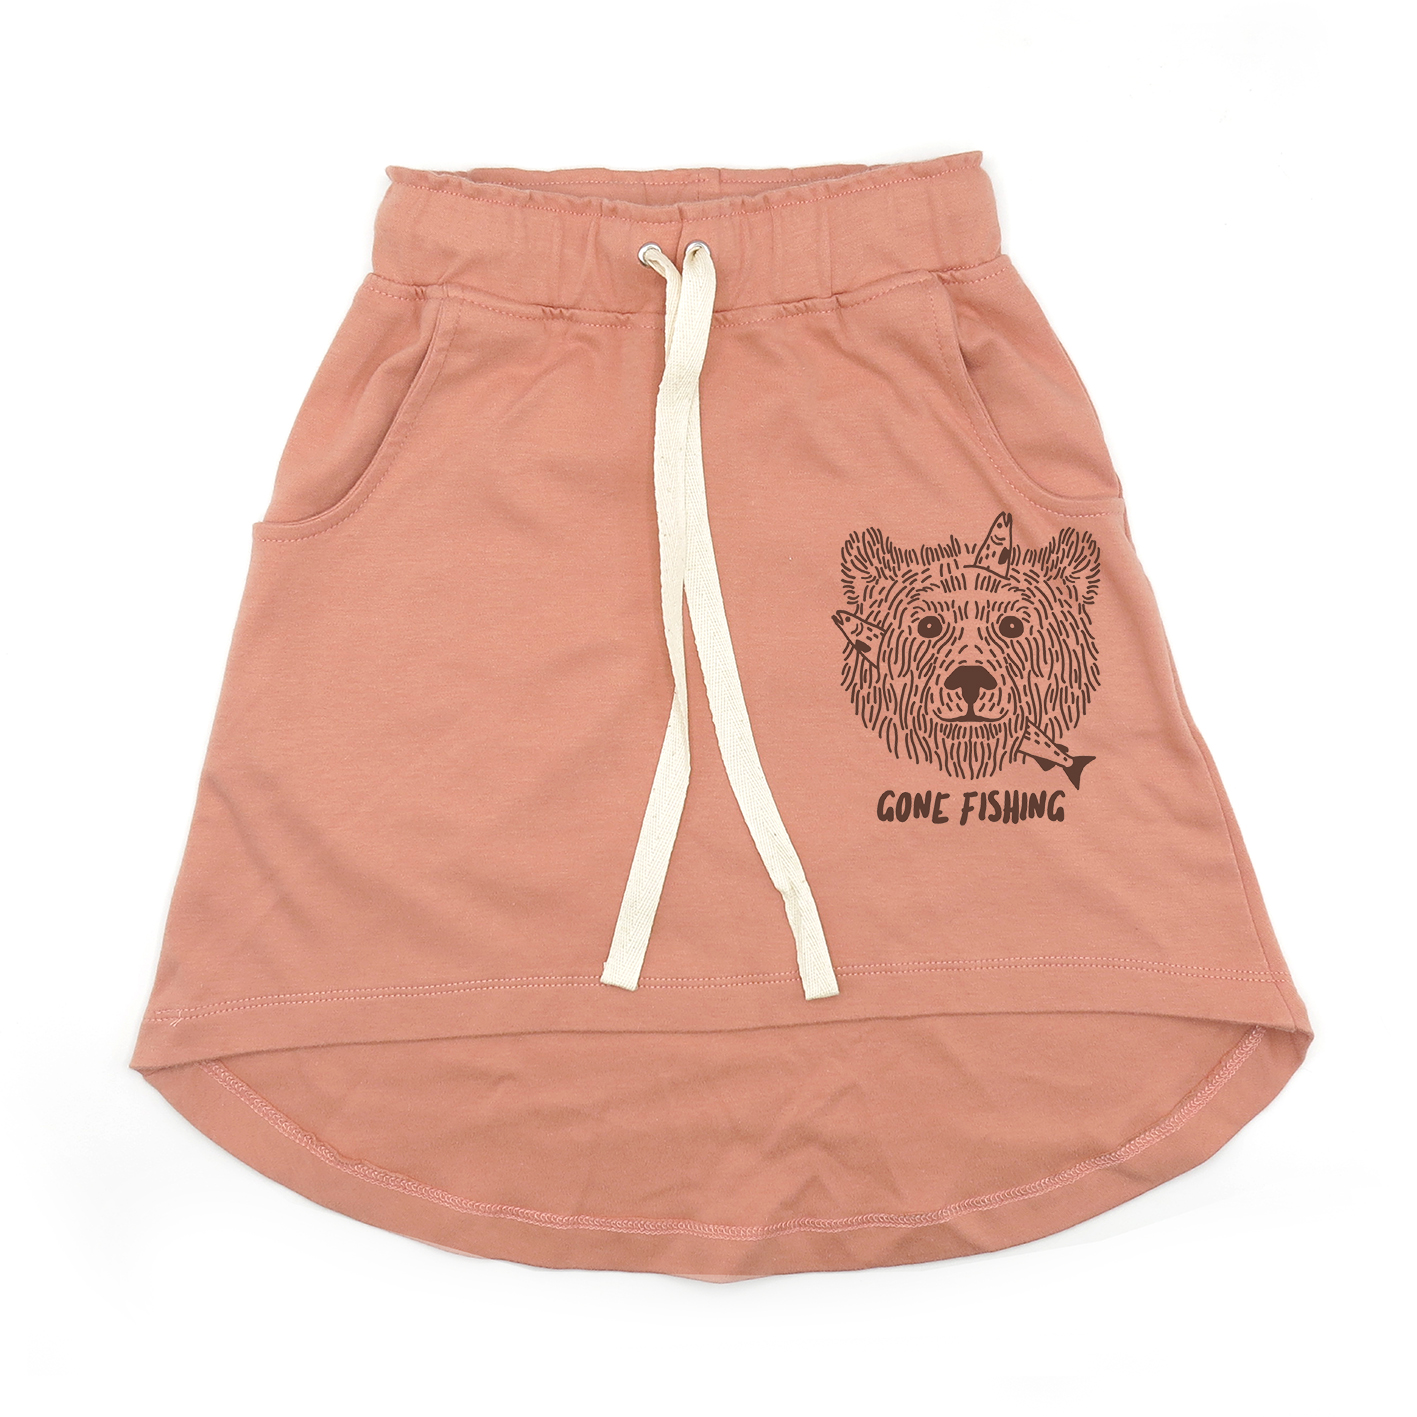 KIDS LP05215 [C] 1-7Y. GONE FISHING KNEE SKIRT